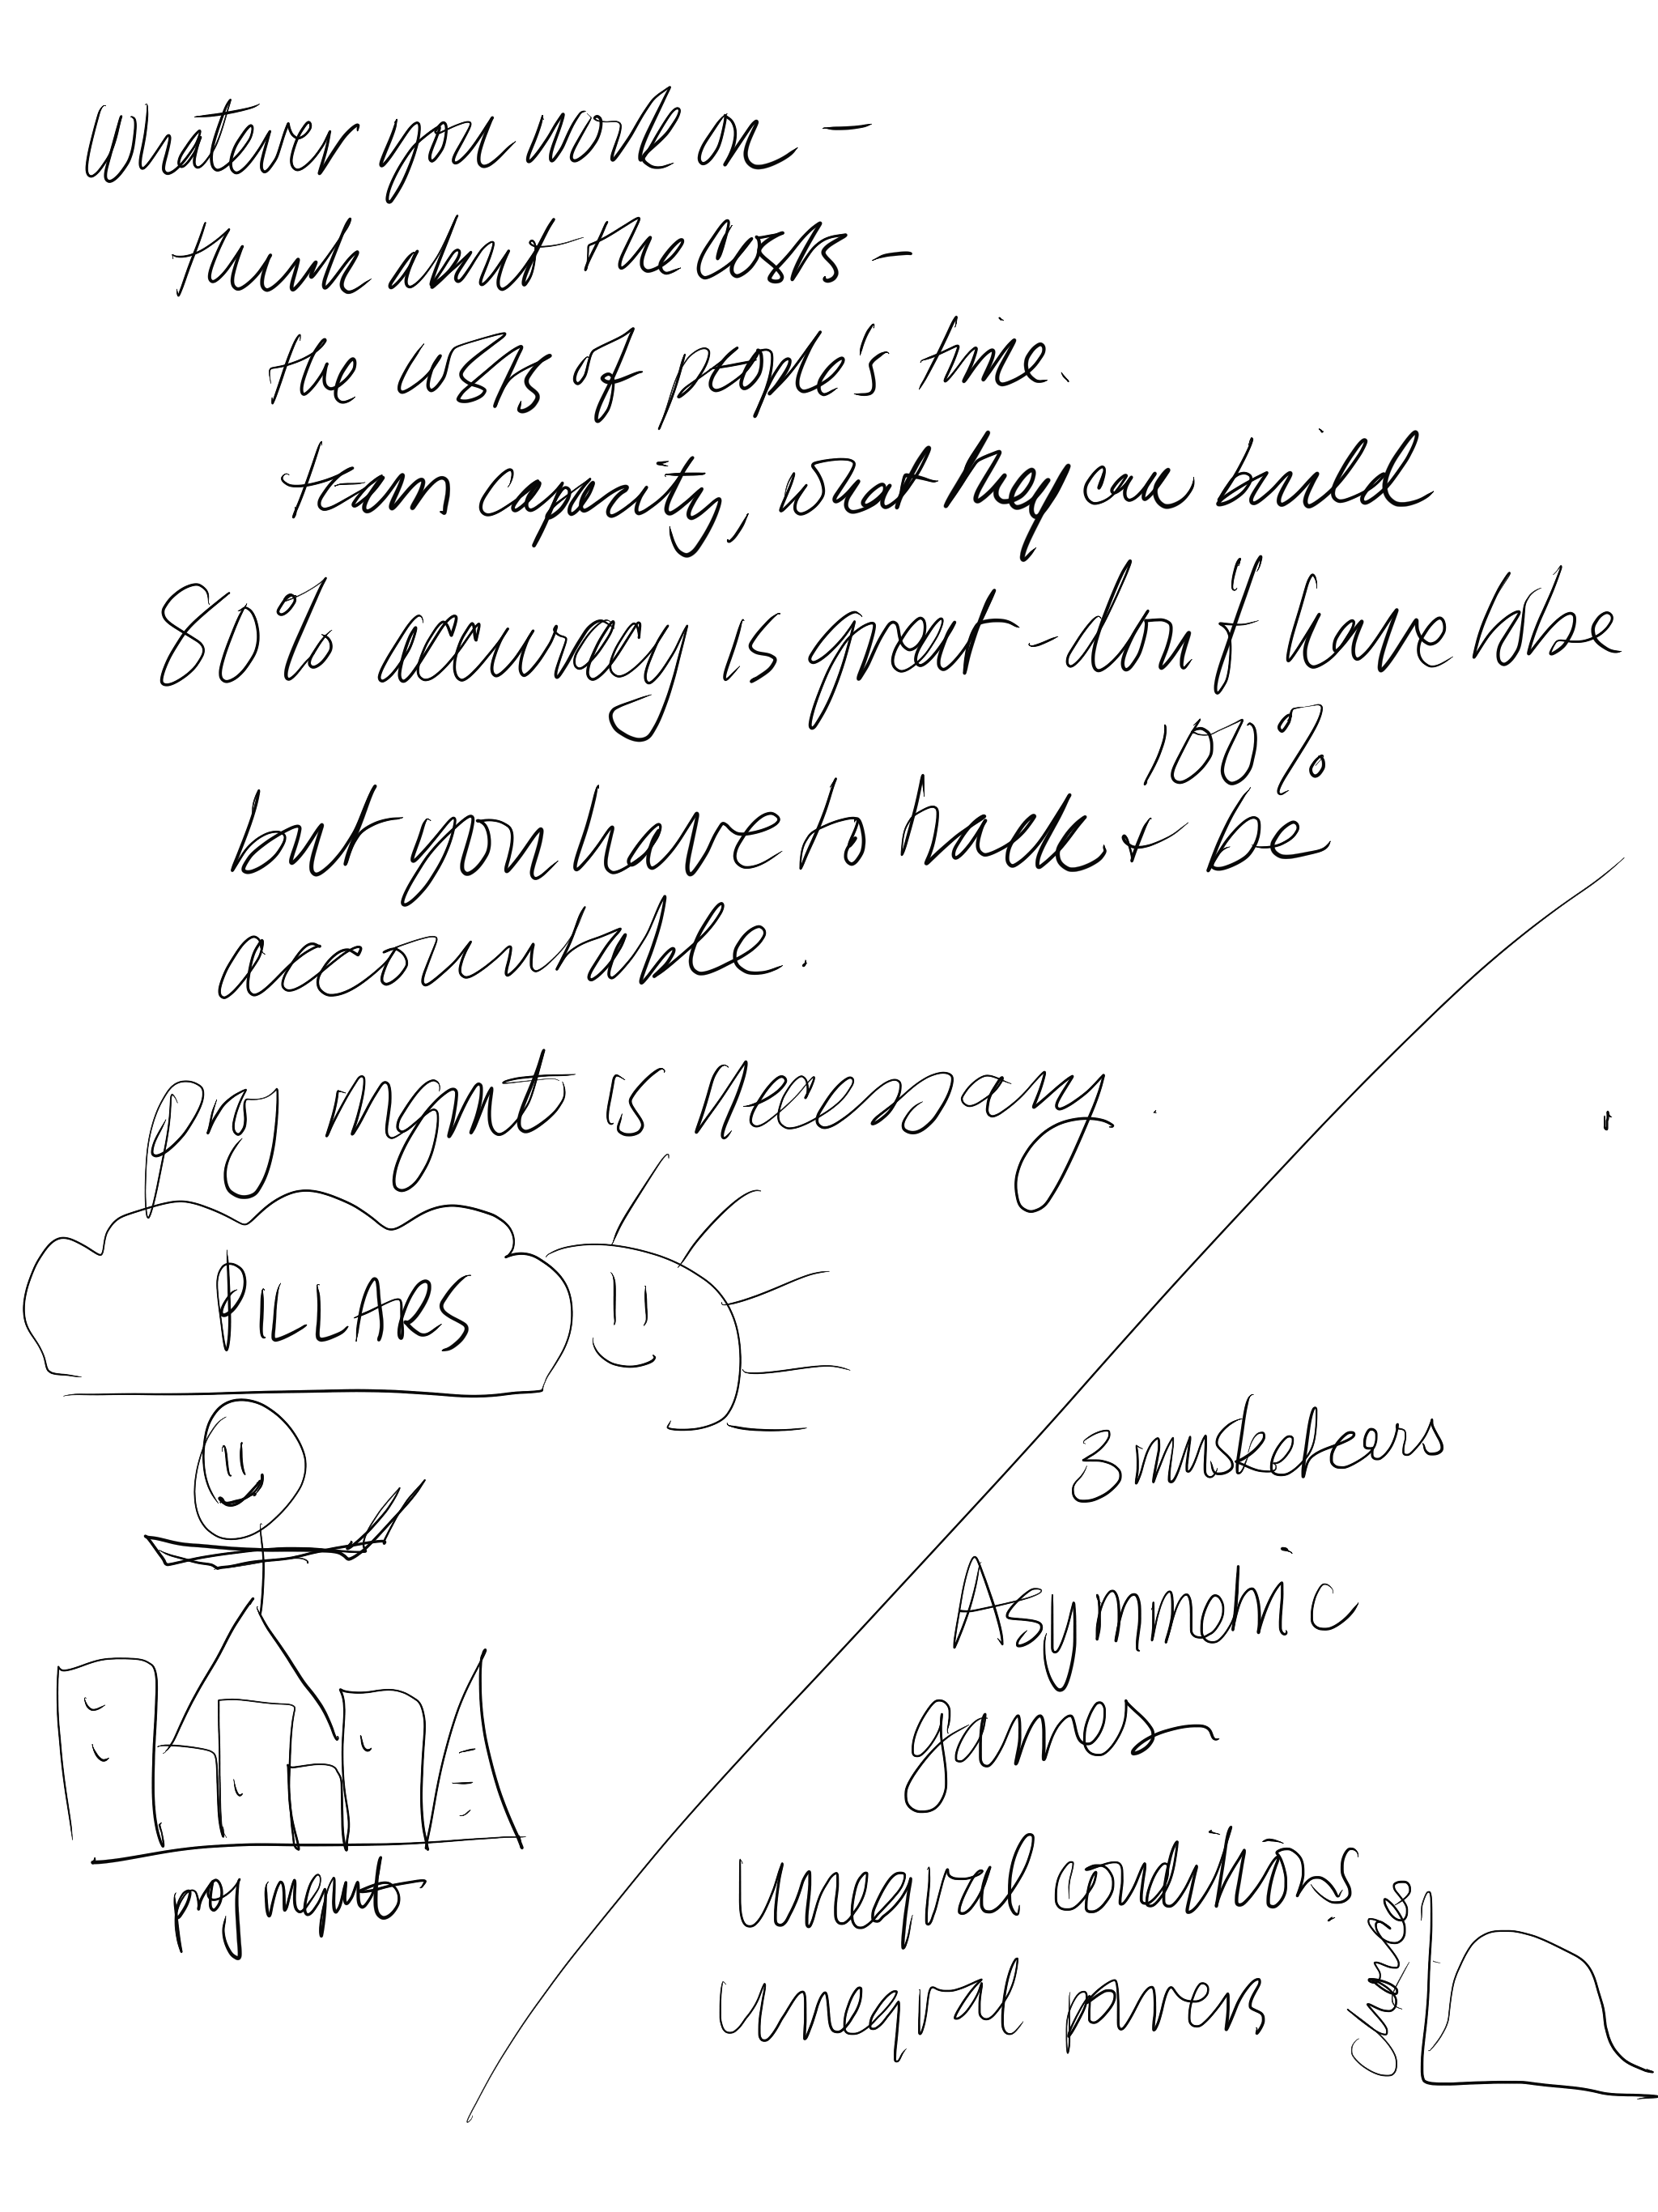 Example from my notes, he was very animated when talking about how his role helps connect the lofty goals to the reality of day-to-day